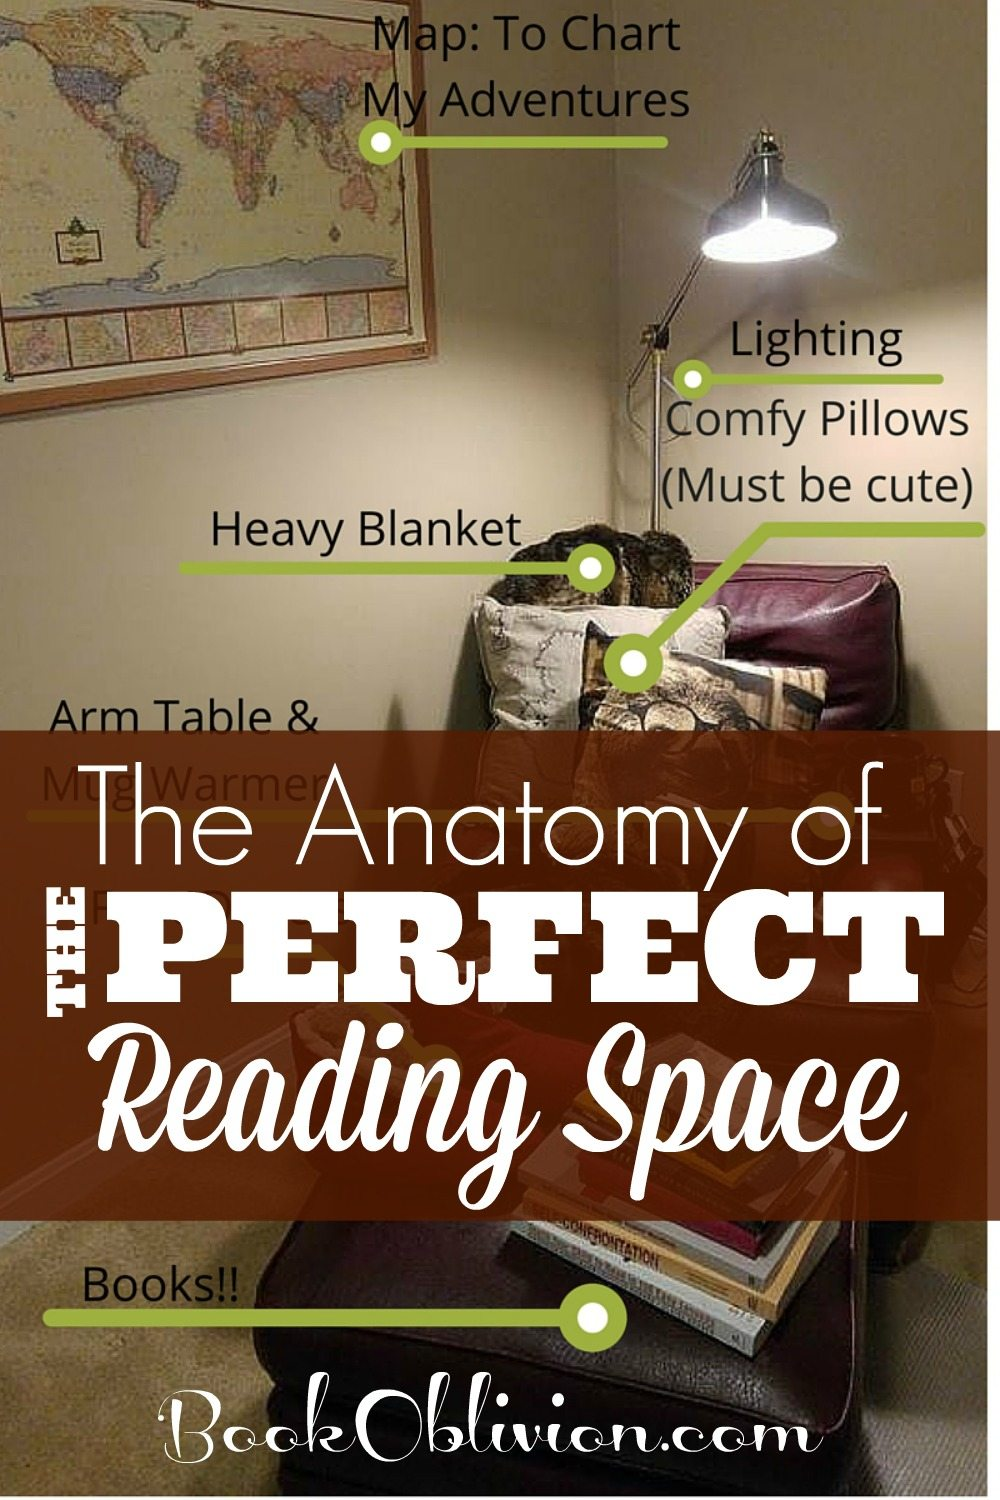 Heavy blanket, novel teas, lighting, and more. Here are all the essentials of the perfect reading nook.